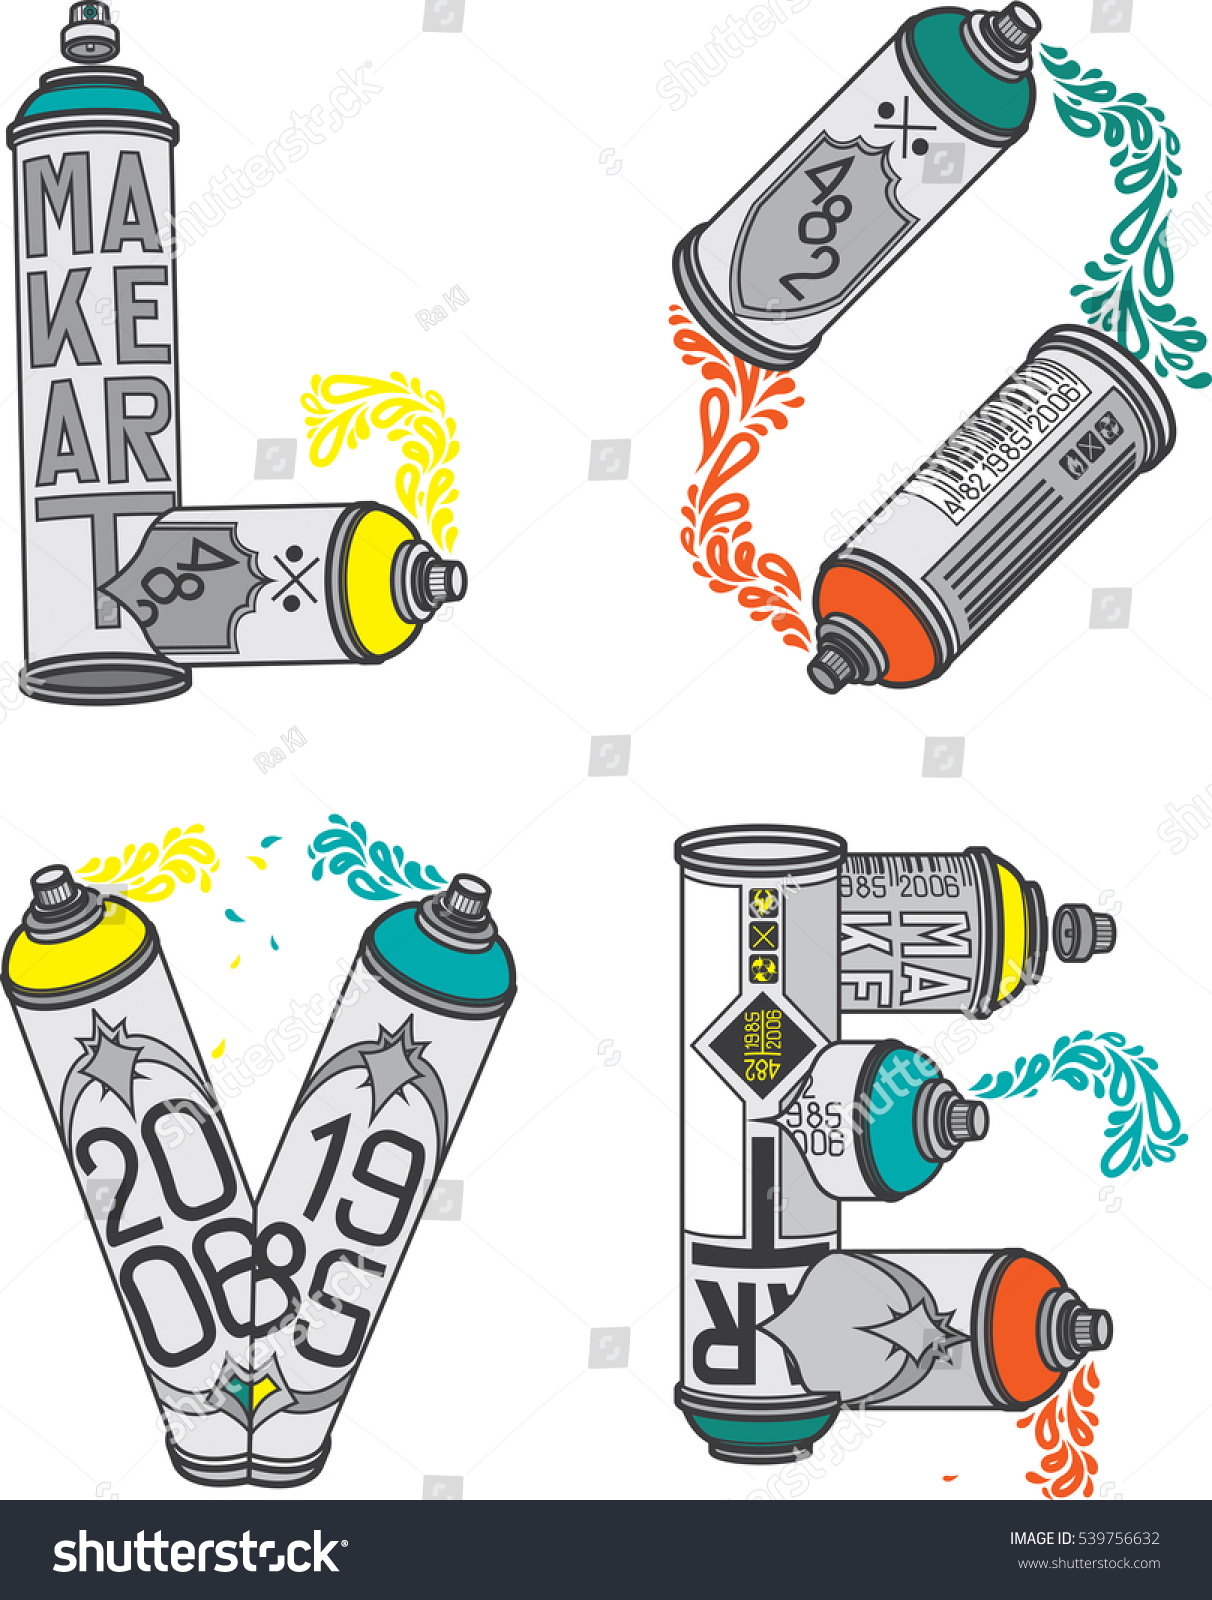 Vector aerosol cans that stylized word stock vector 539756632 vector aerosol cans that stylized word love consisting of cans spray paint and caps ccuart Image collections